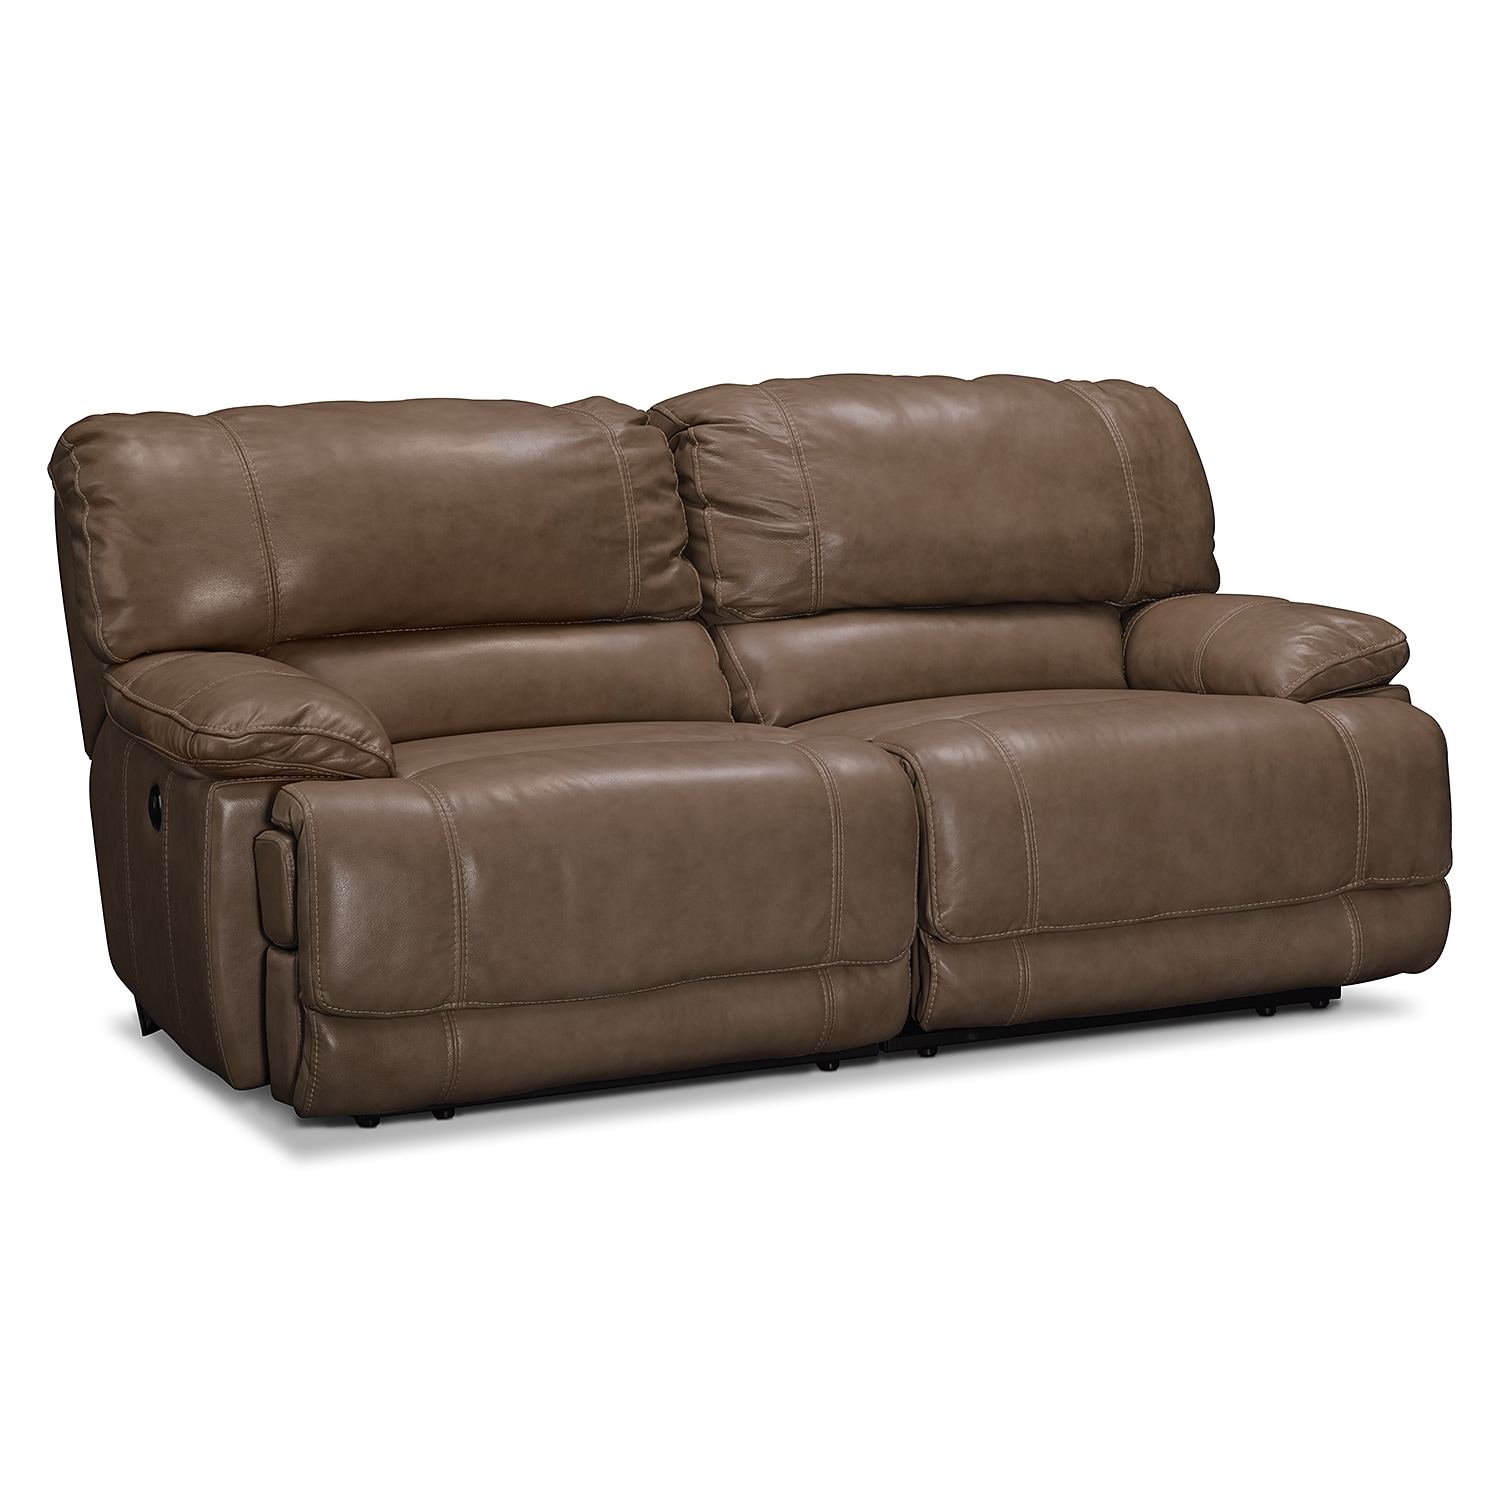 American signature furniture st malo ii leather 2 pc for Leather reclining sofa